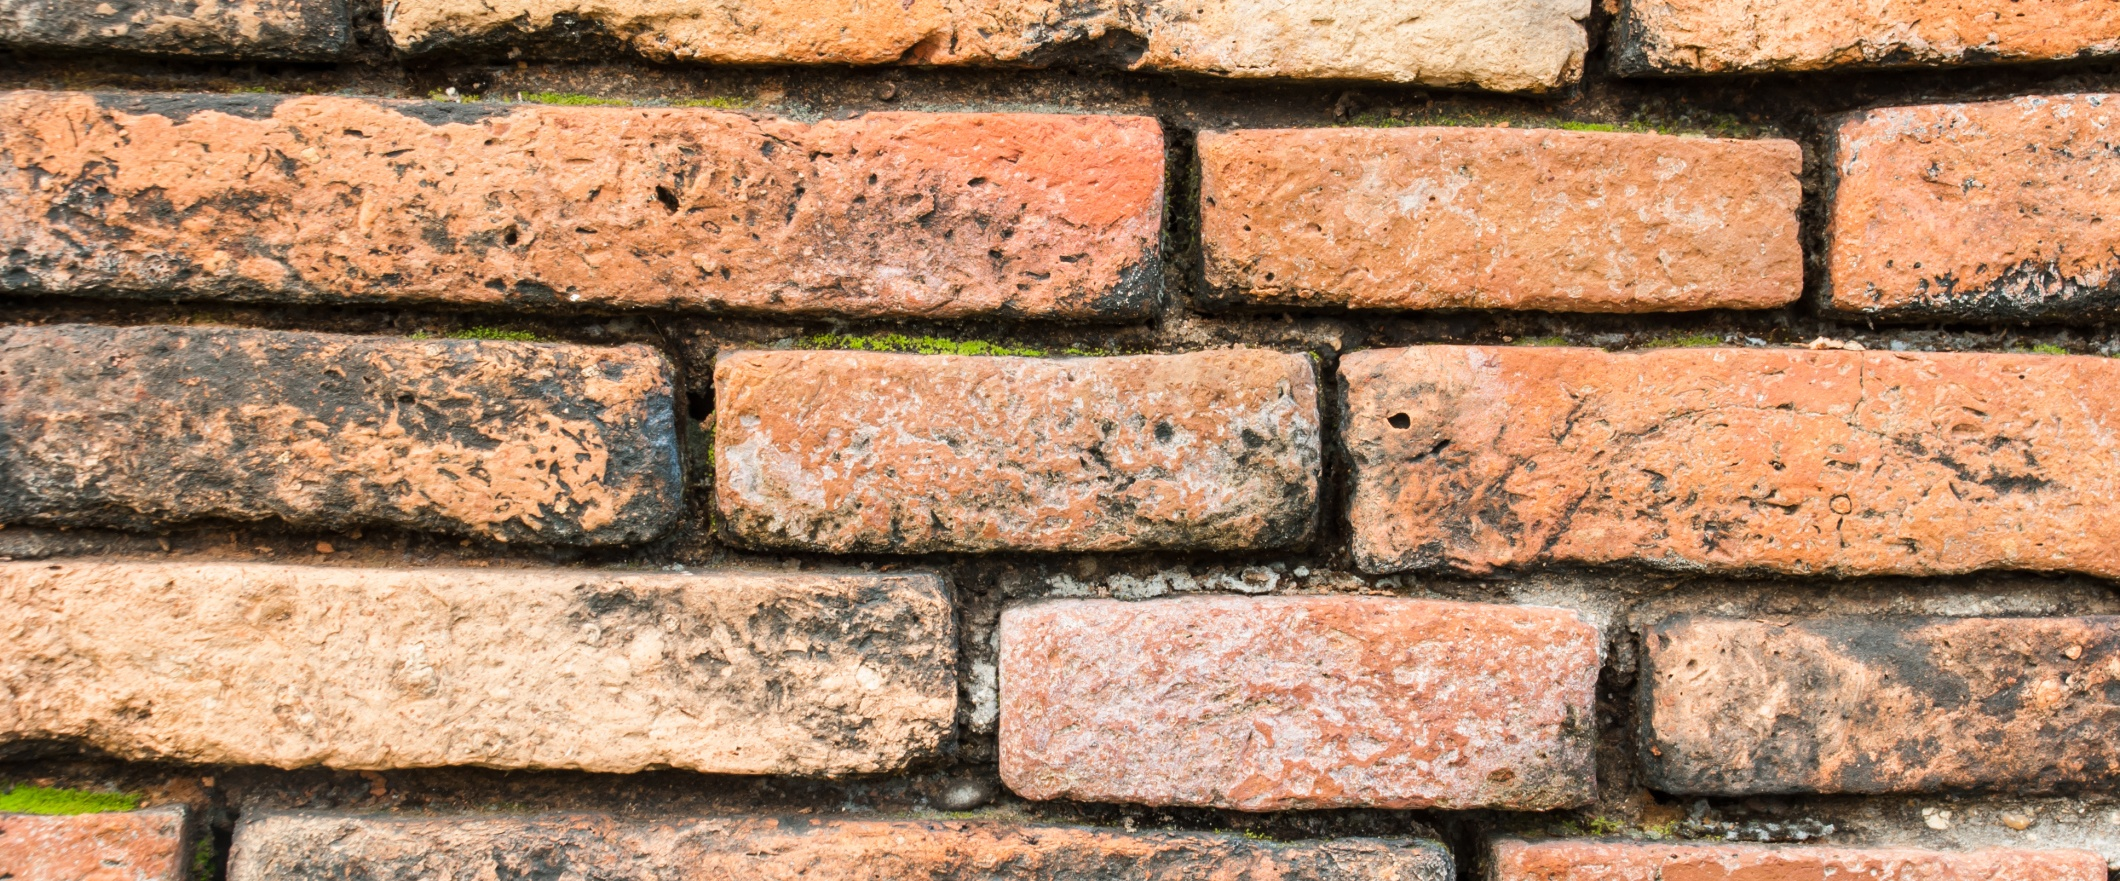 5 Ways Qualified Prospects Fall Through The Cracks